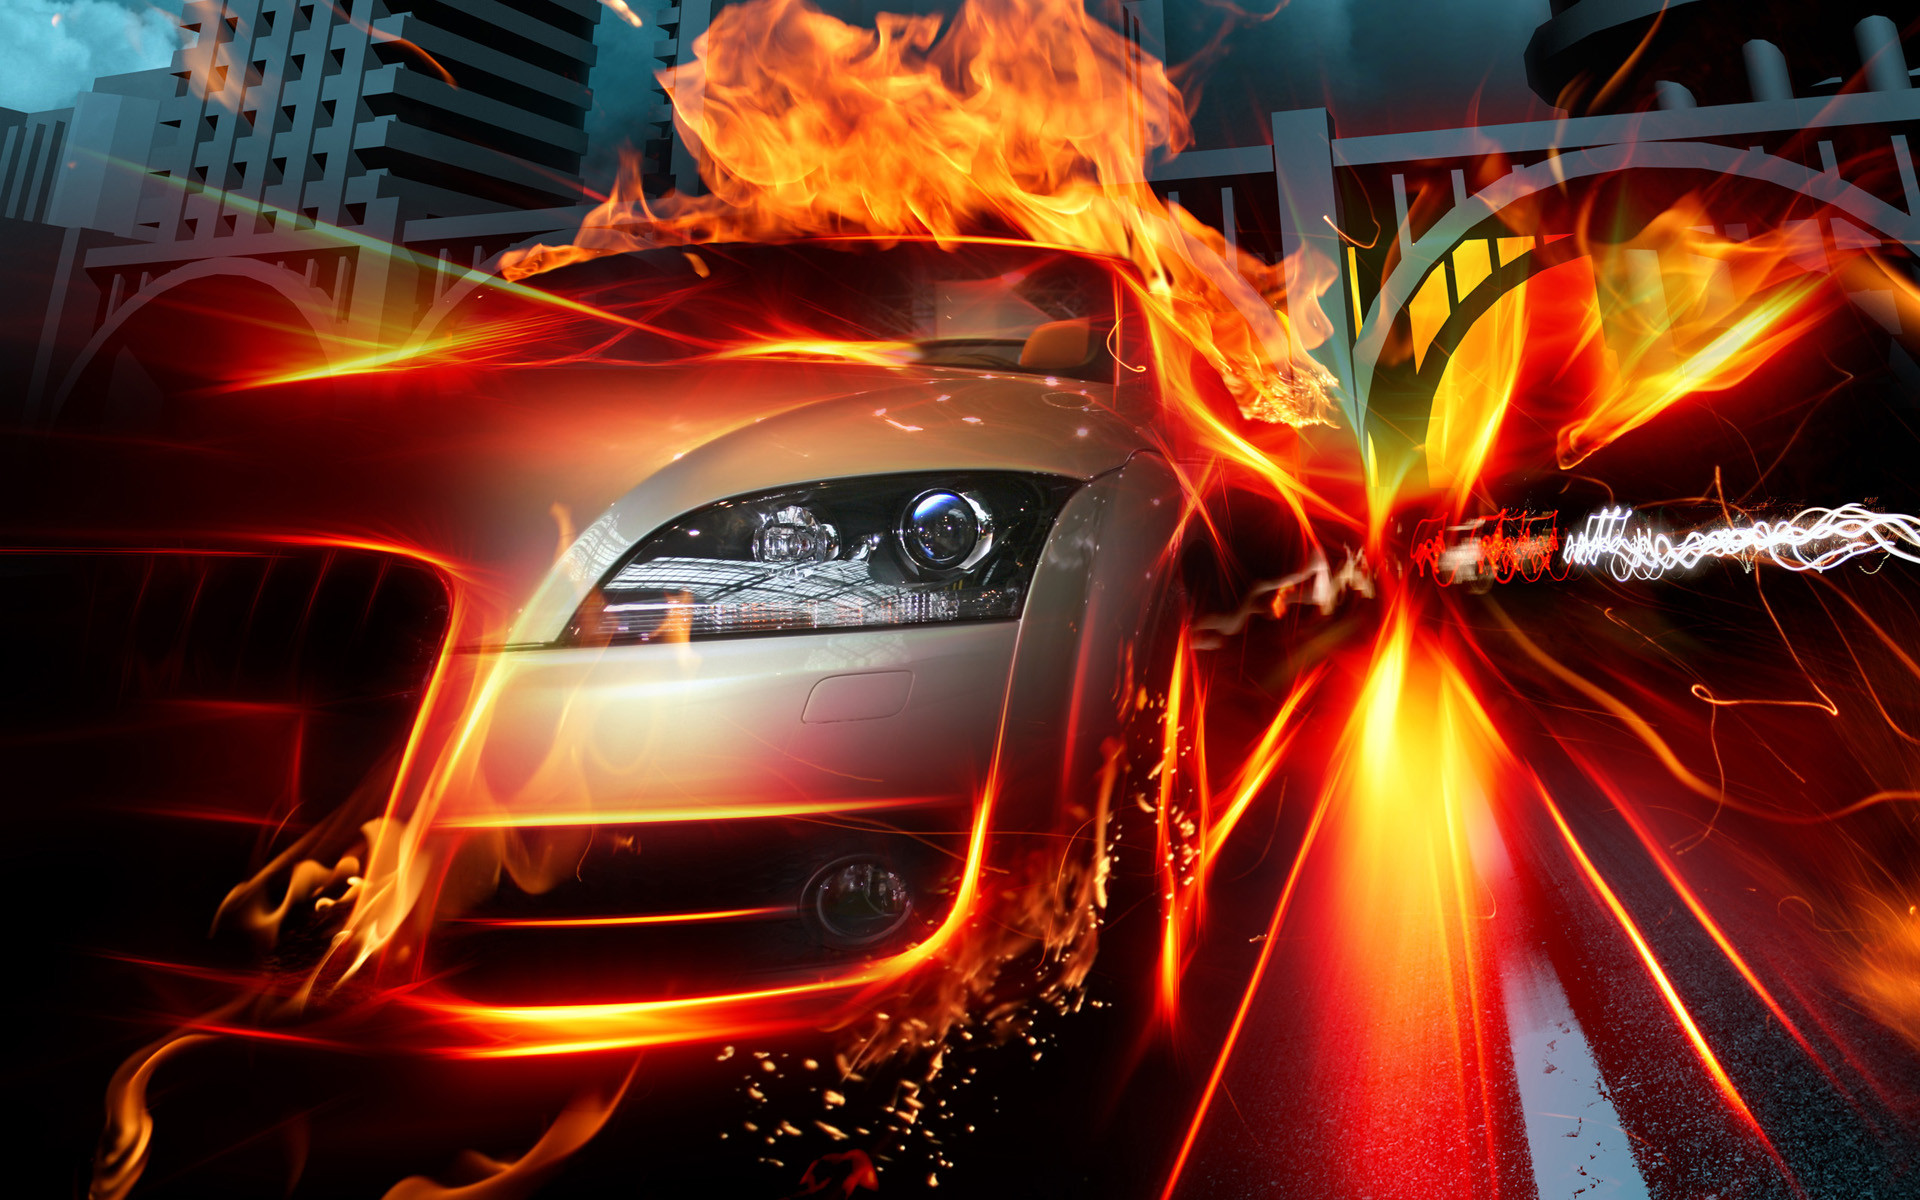 Photography - Manipulation  Vehicle Flame Ride Urban Fantasy Wallpaper